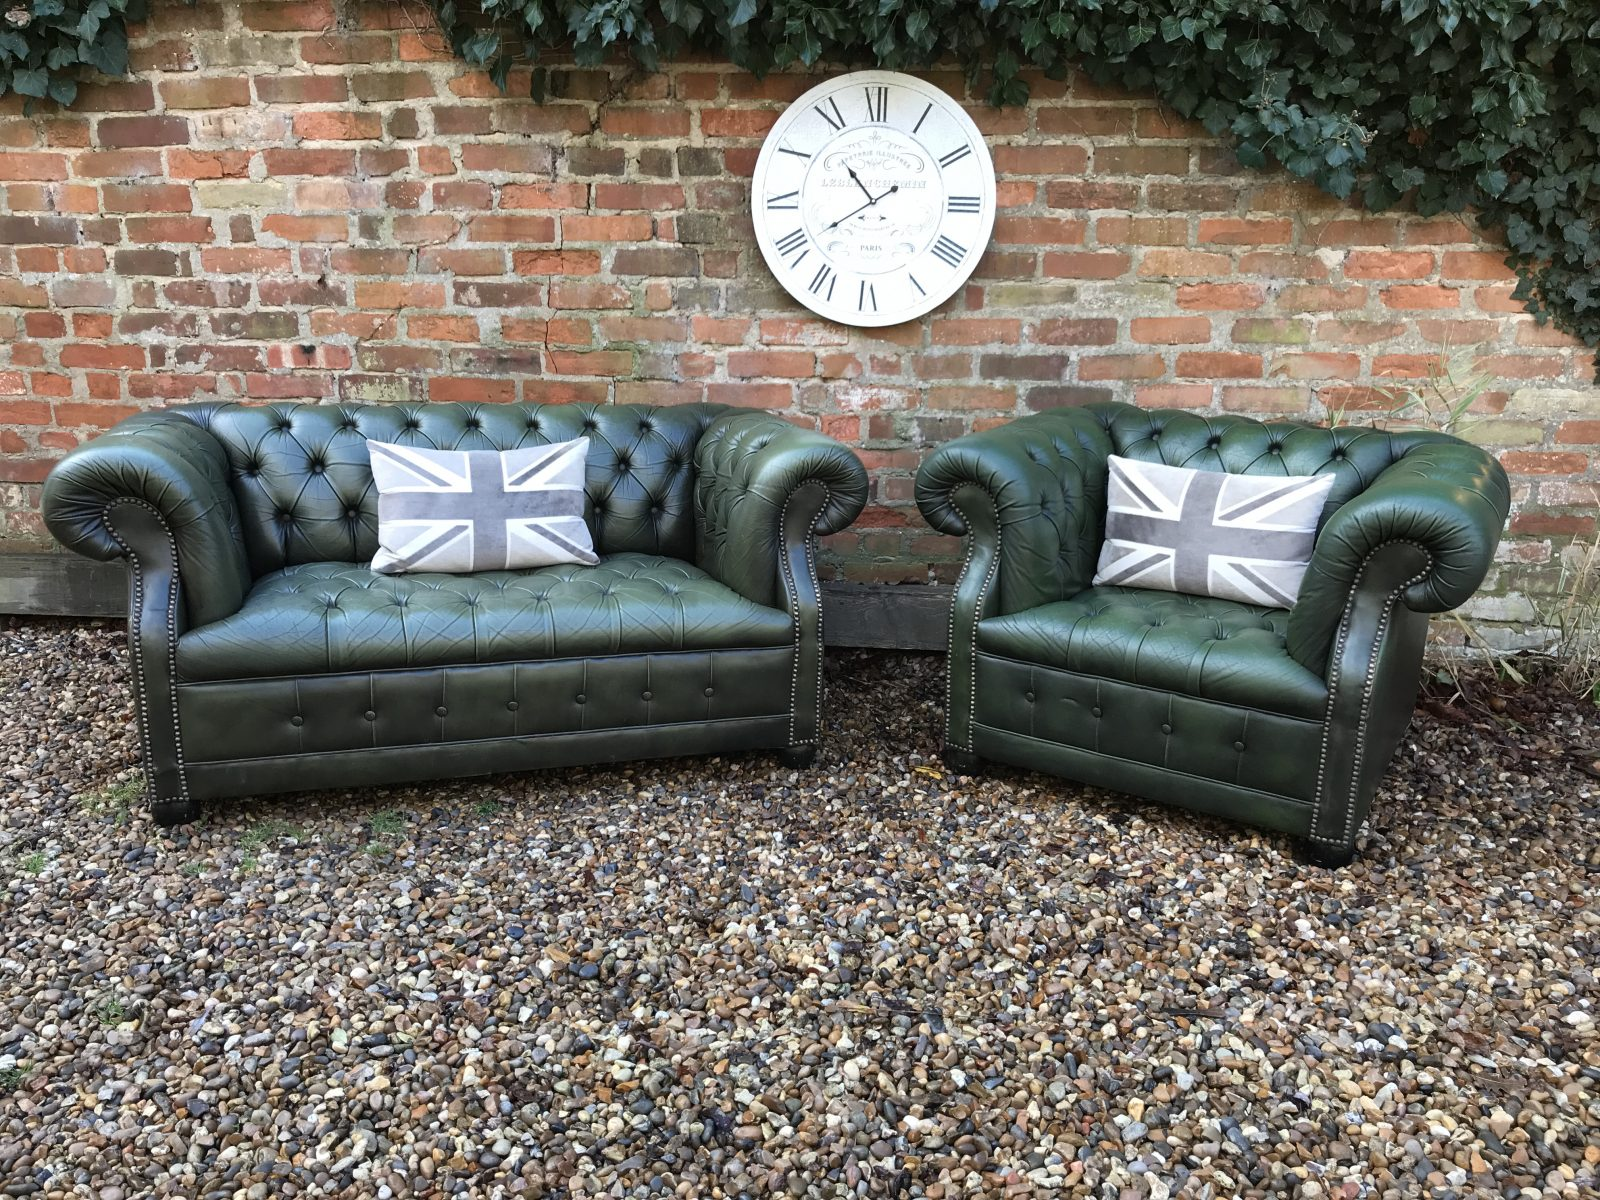 Vintage Ivy Green Button Base Chesterfield Sofa Set.